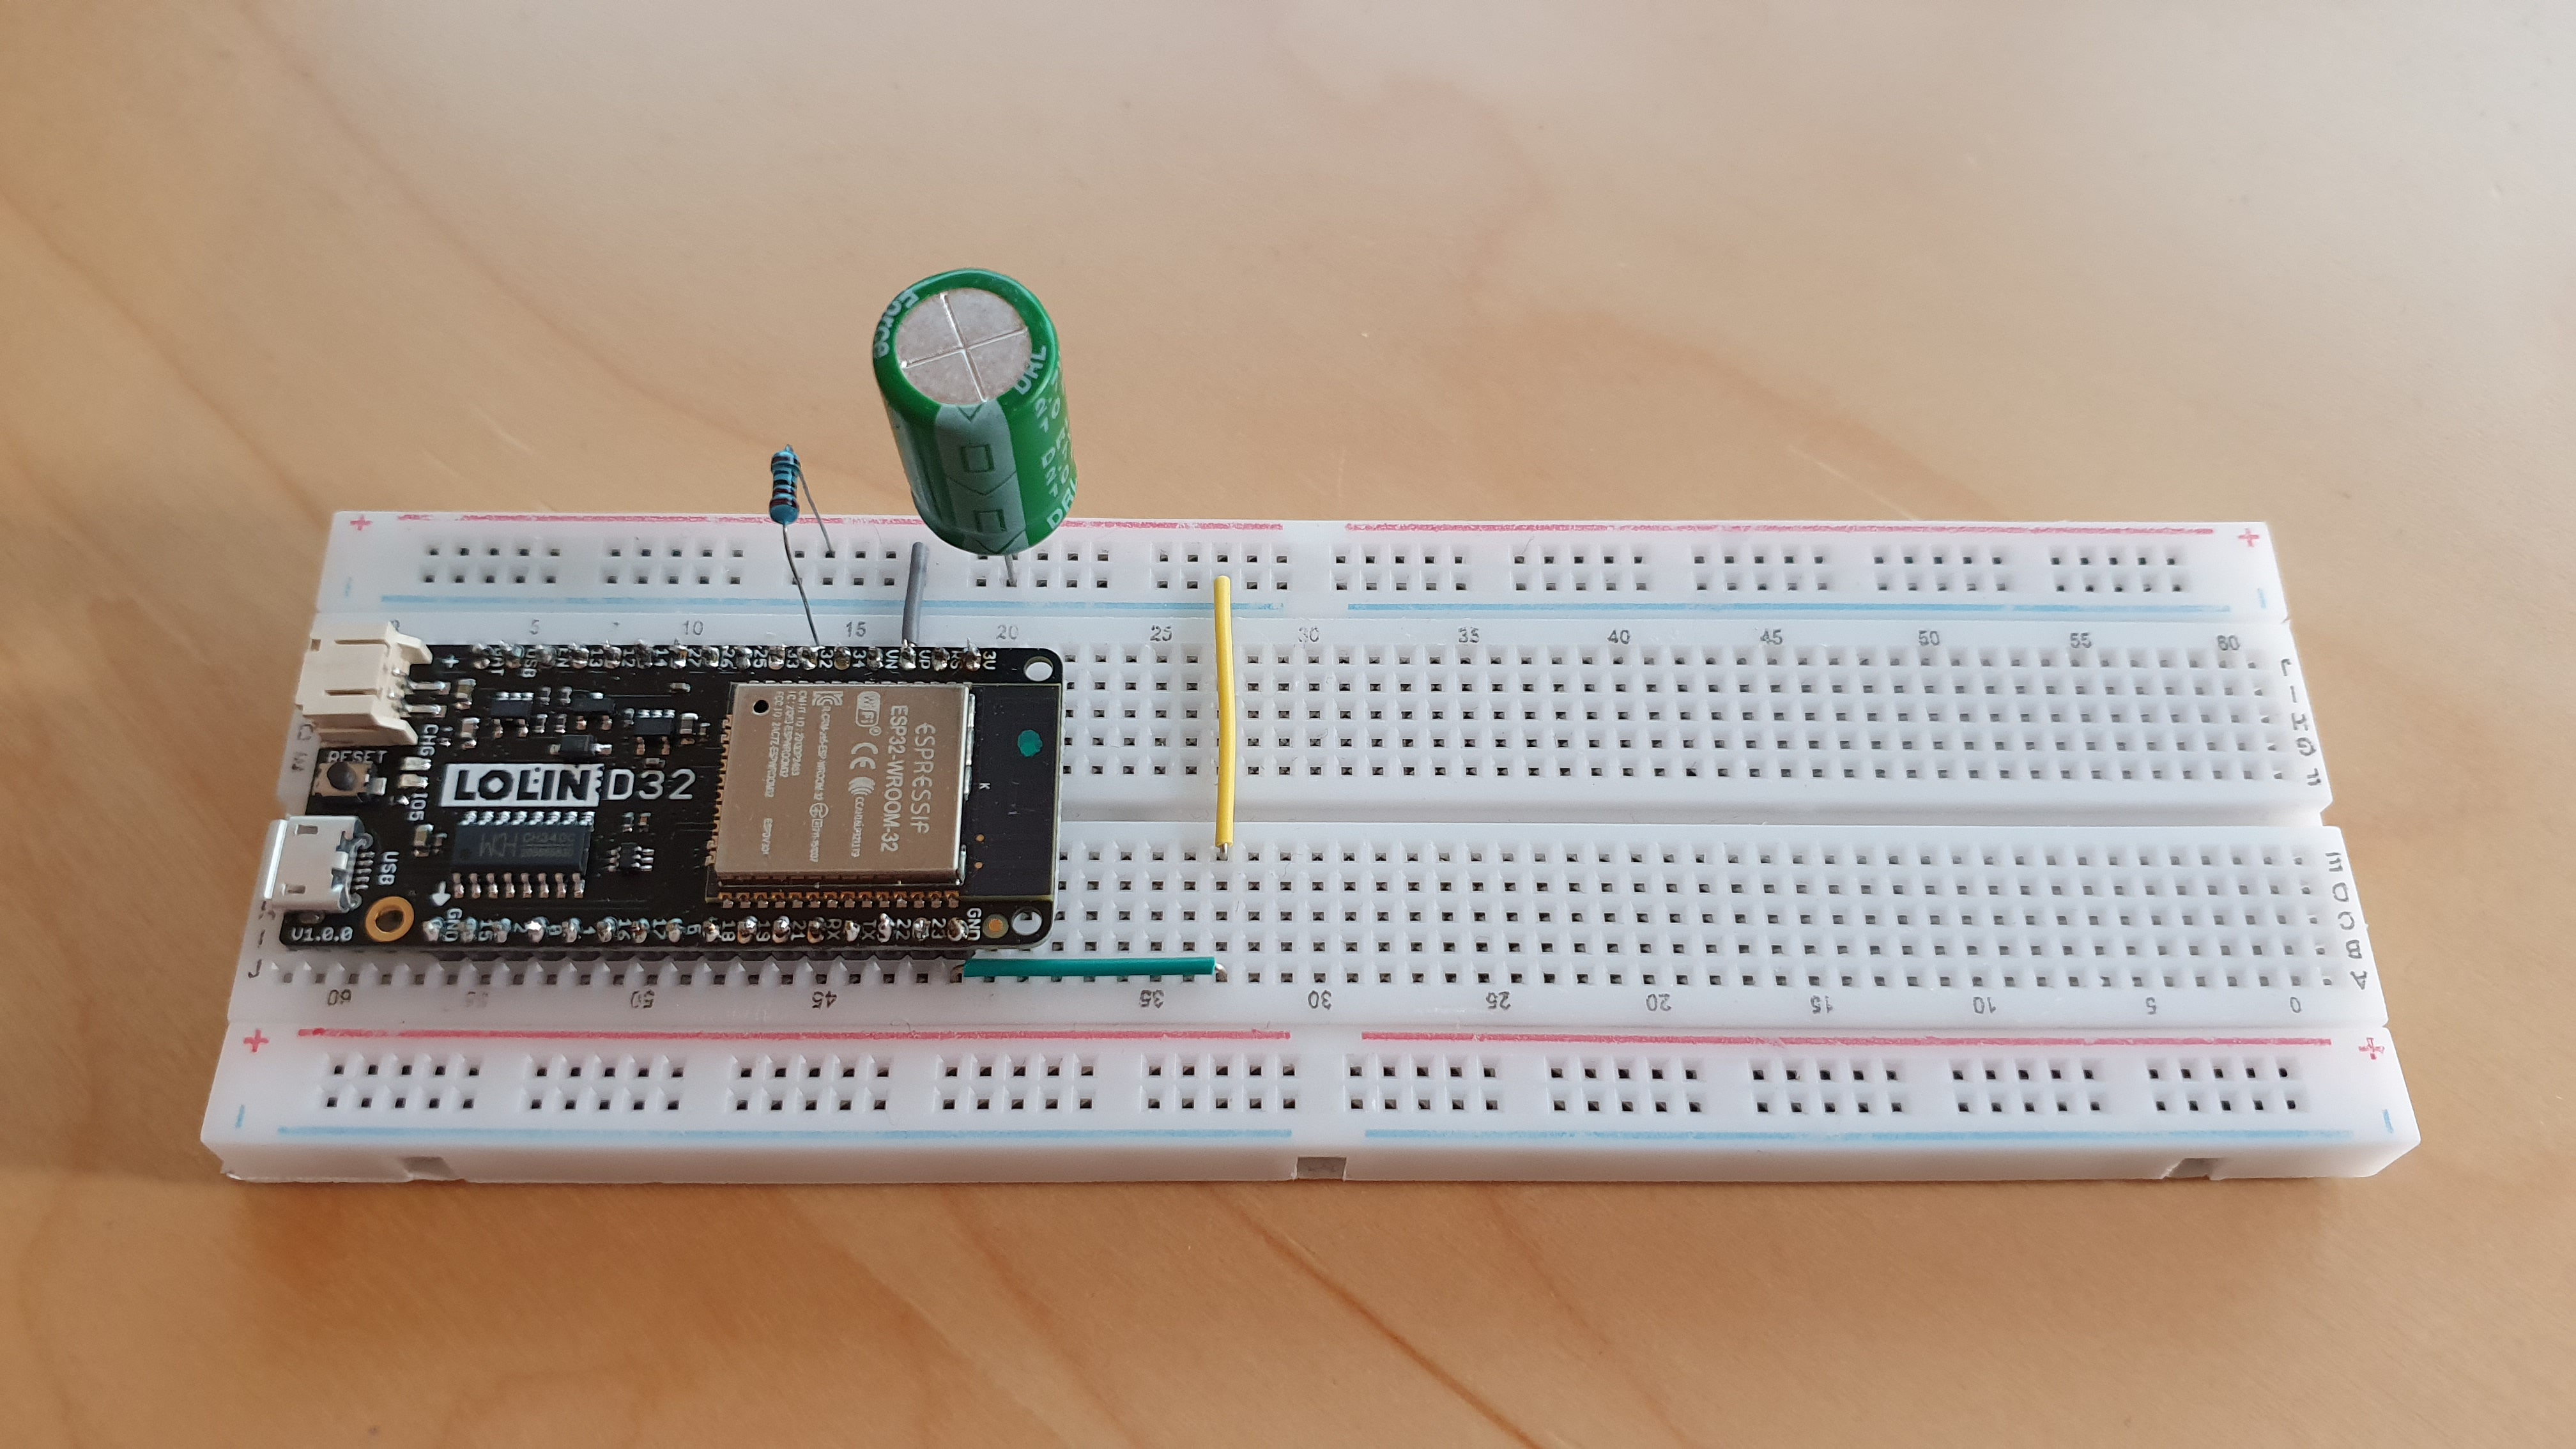 Capacitance meter using ESP32 and a resisitor